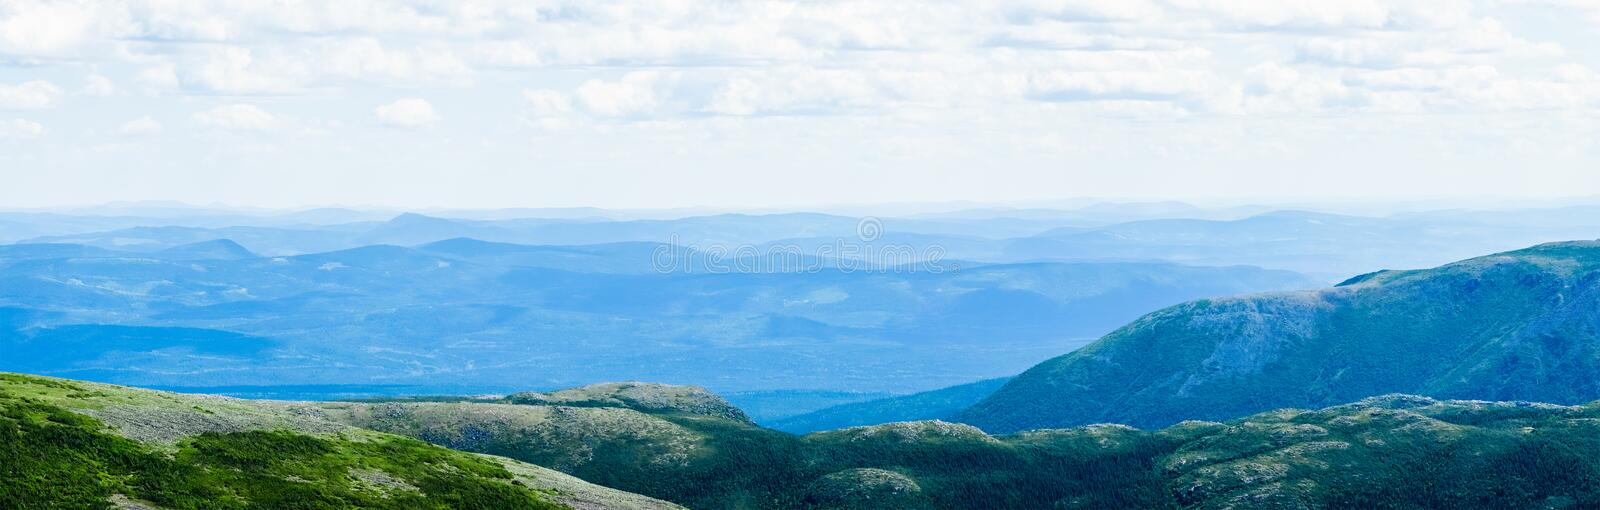 Vista de Mont Jacques-Cartier fotografia de stock royalty free